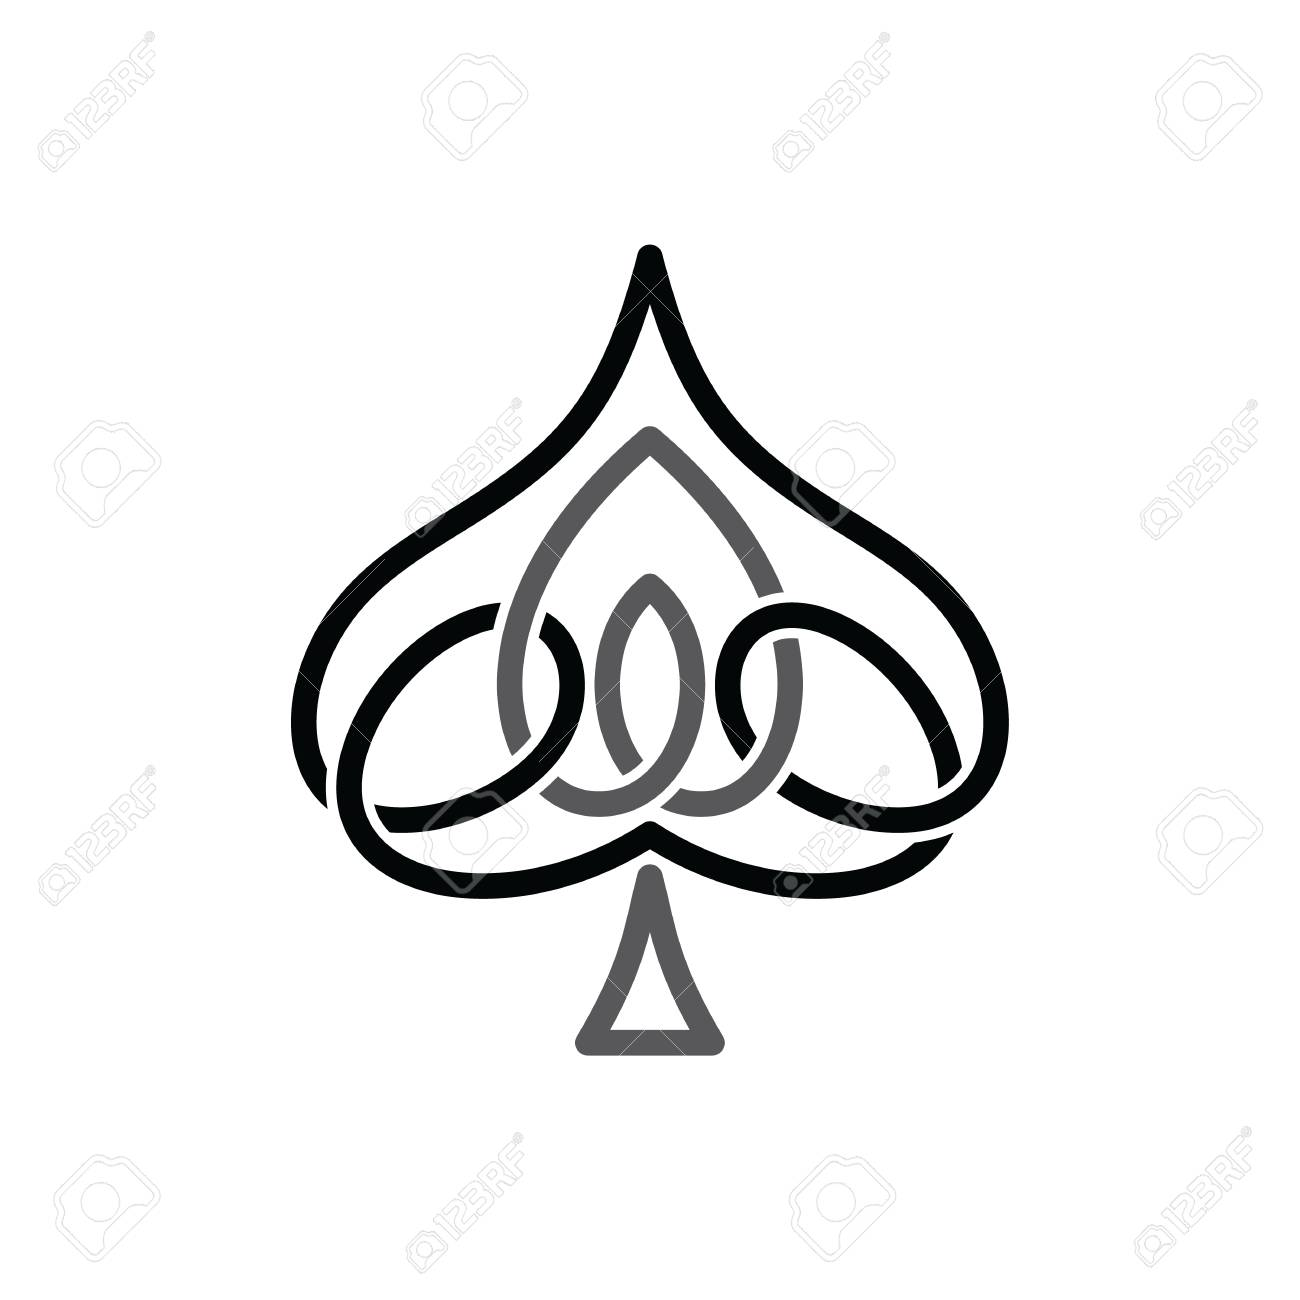 Celtic ace of spade overlapped black abstract floral concept celtic ace of spade overlapped black abstract floral concept logo logotype stock vector 74243535 biocorpaavc Choice Image